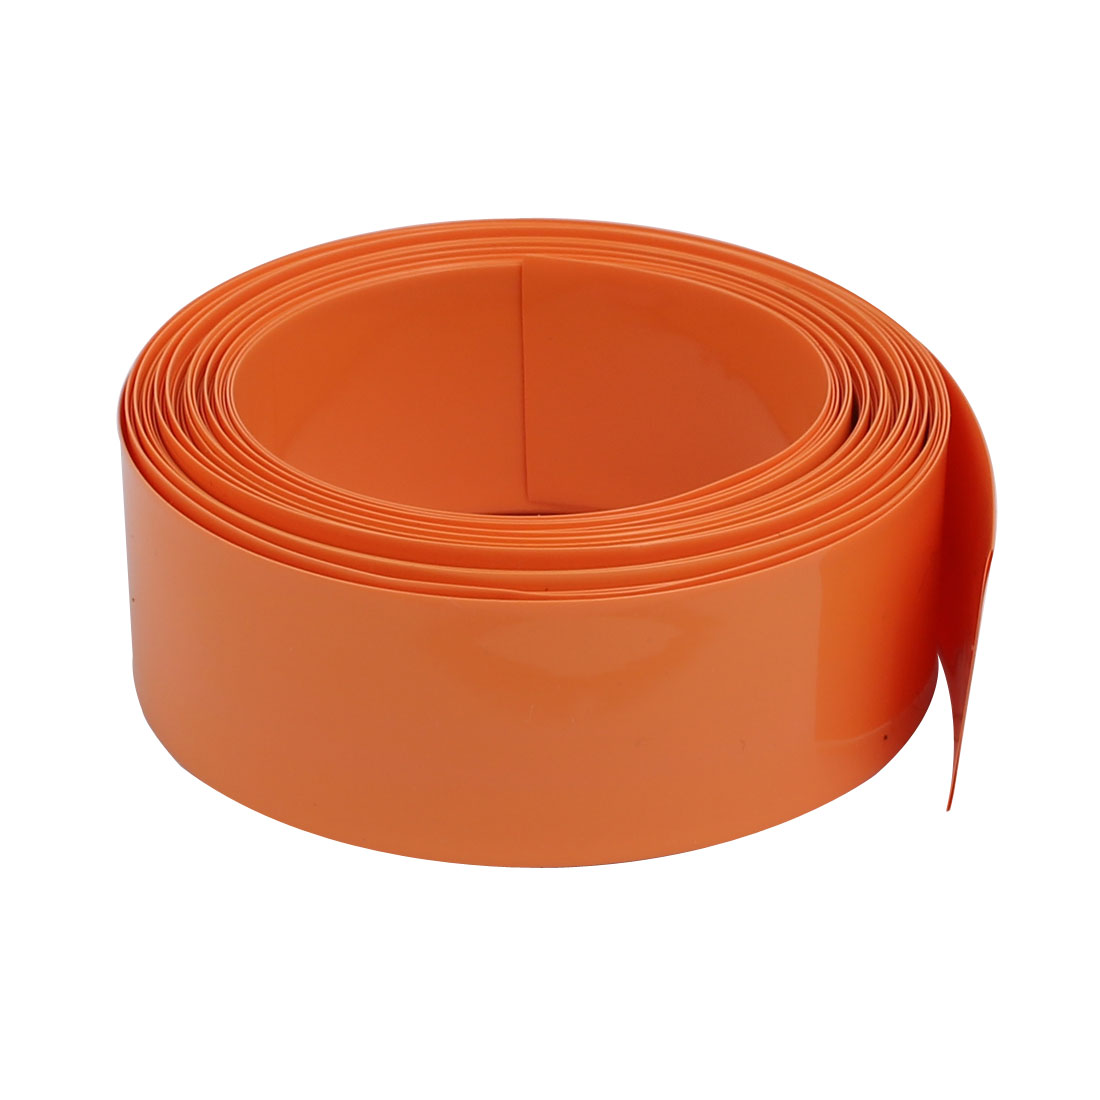 23mm Flat Width 5 Meter Long PVC Heat Shrinkable Tube Orange for AA Battery Pack